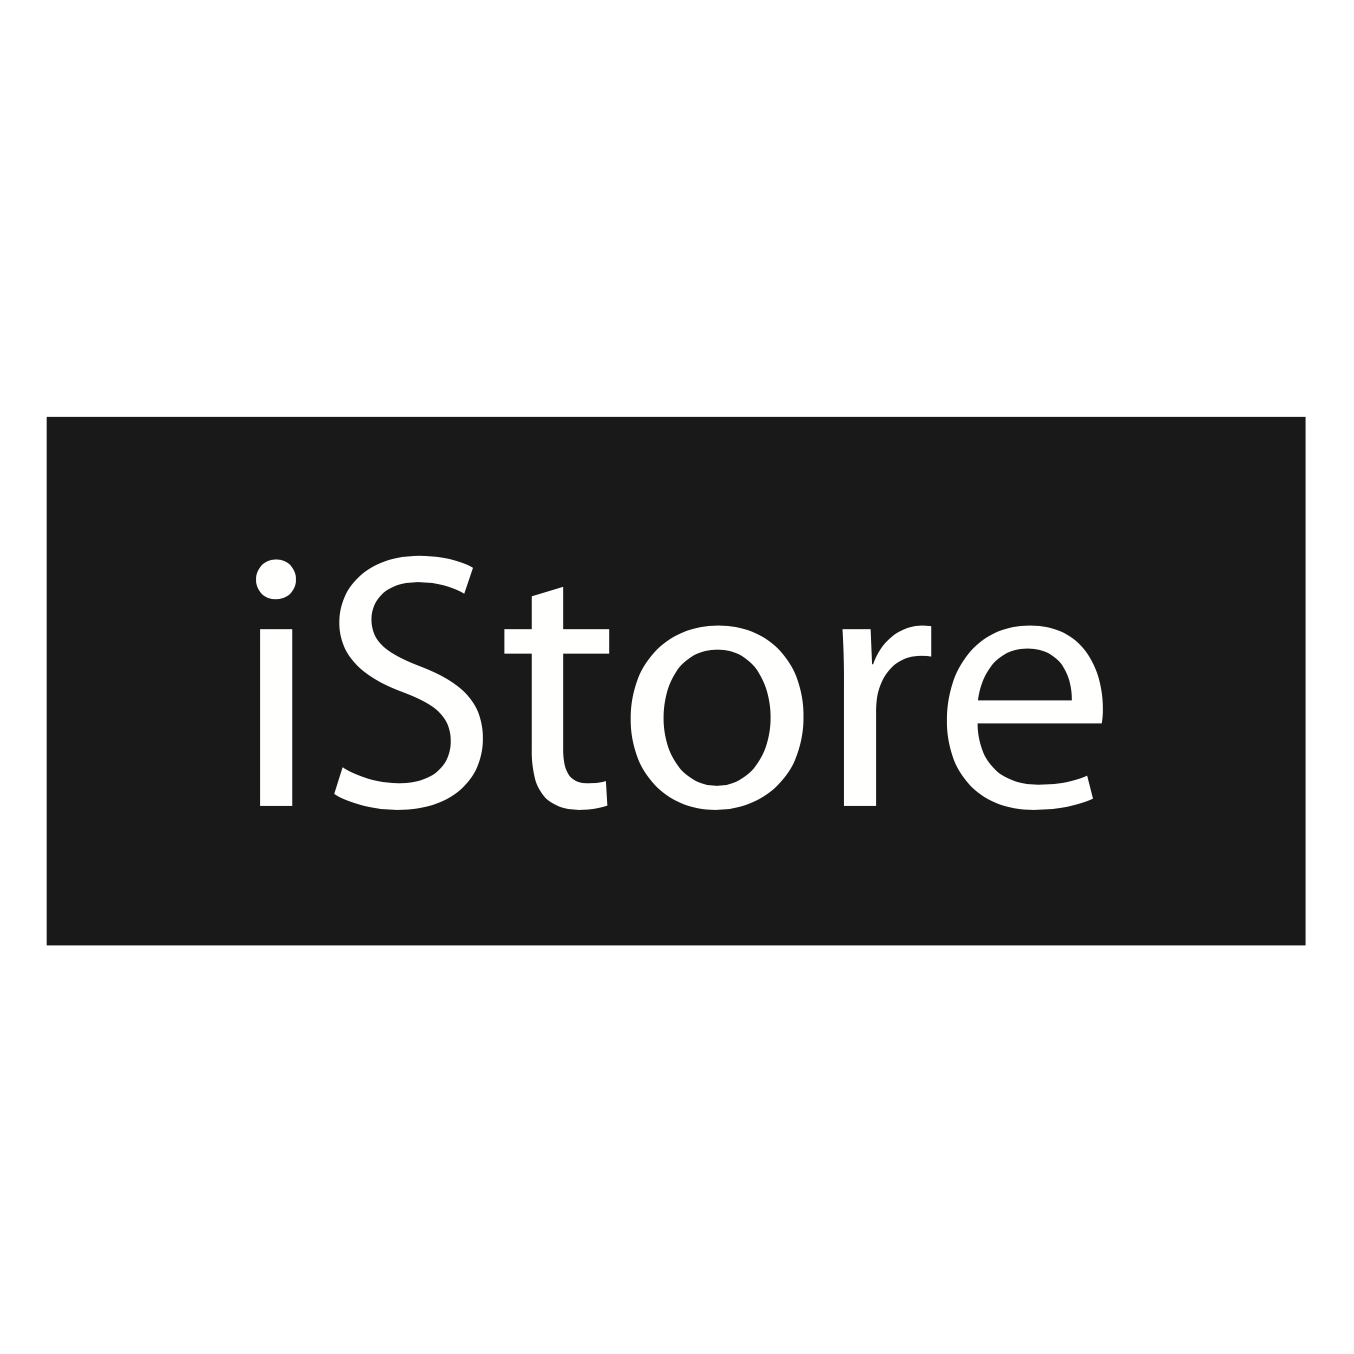 iPhone Battery Replacement at iStore